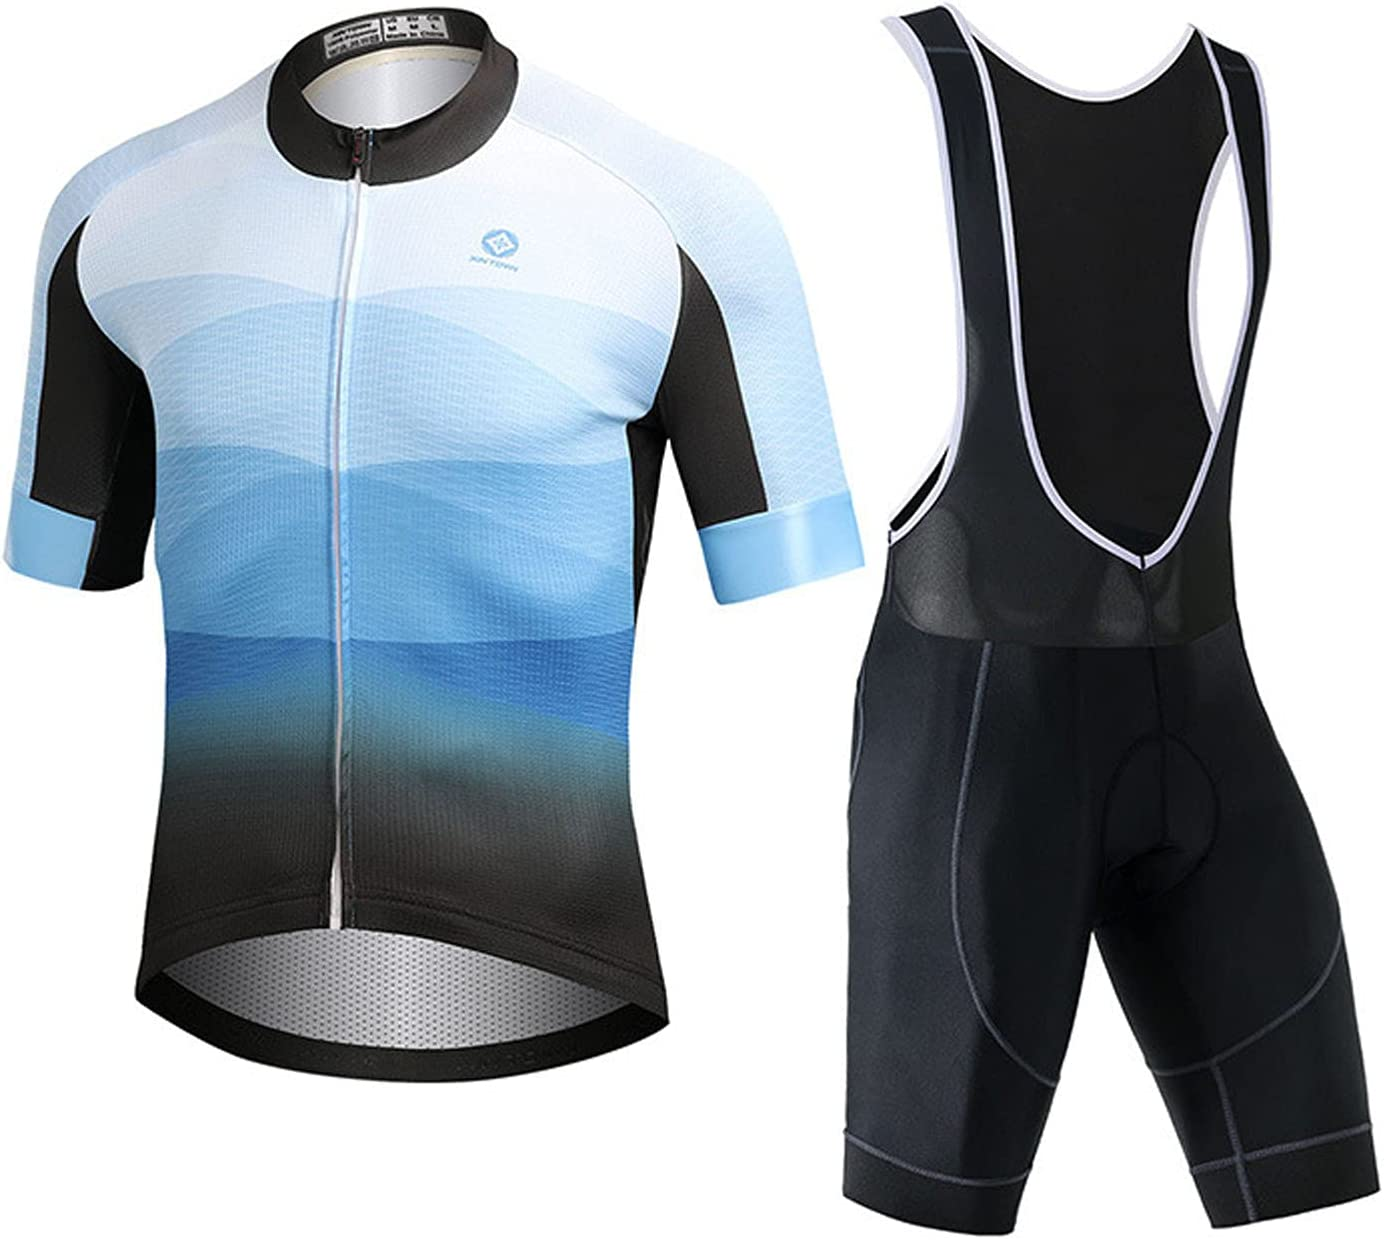 Free shipping Unkoo New White Regular dealer Pro Bicycle Team Maillot Short Sleeve H Ciclismo